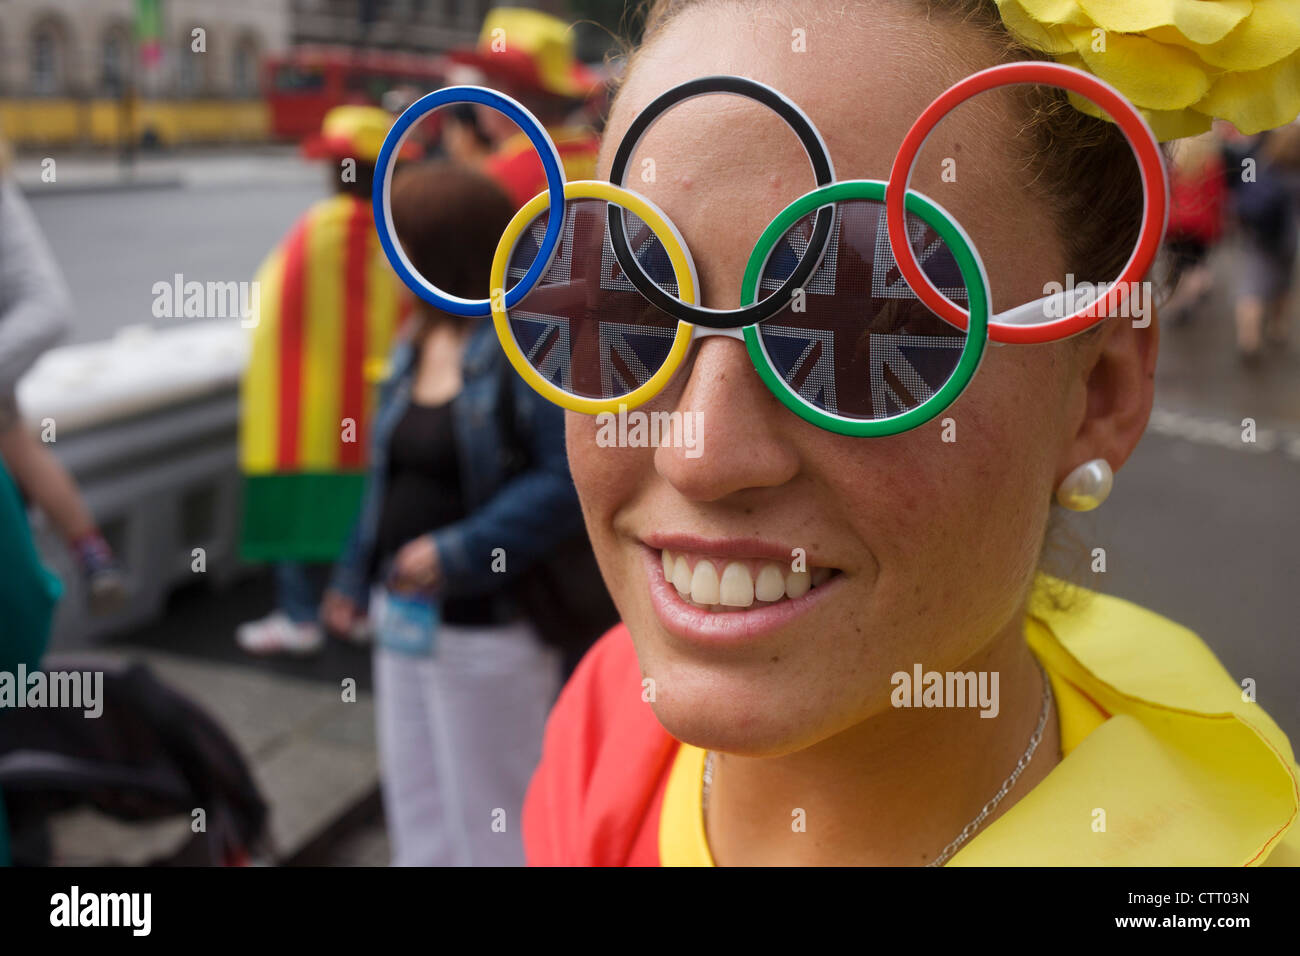 wearing-olympic-ring-glasses-a-lady-spor